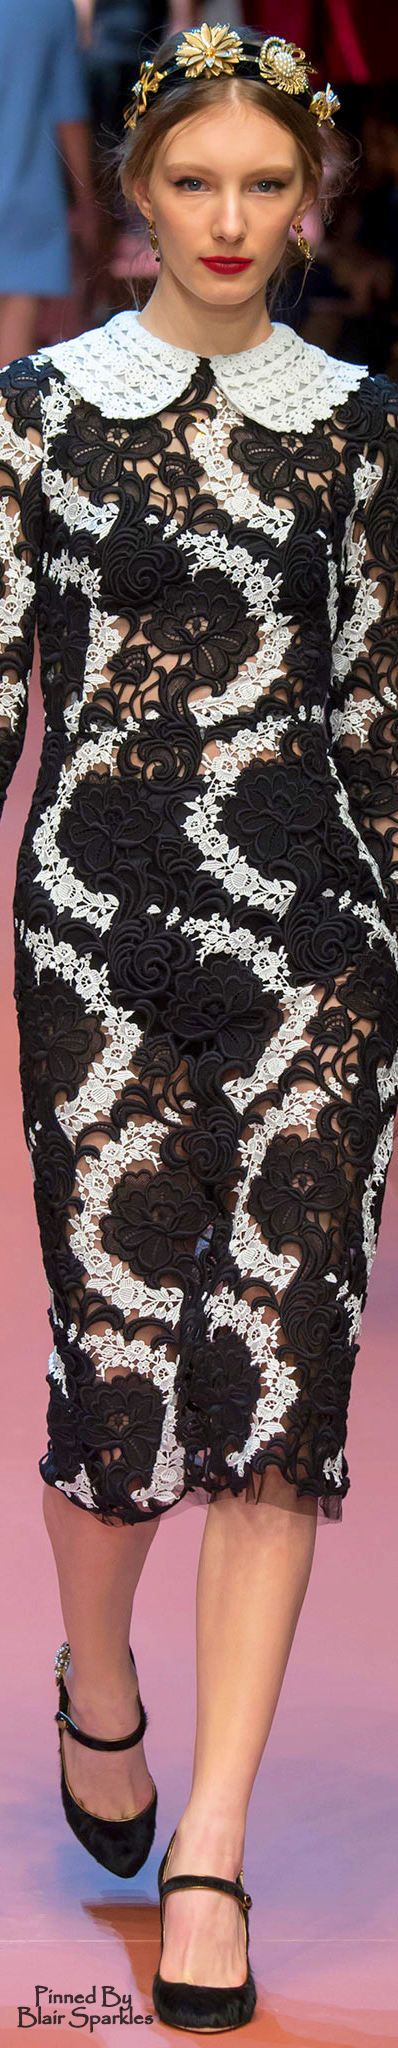 Fall 2015 RTW Dolce & Gabbana  ♕♚εїз | BLAIR SPARKLES black and white lace dress.  women fashion outfit clothing stylish apparel @roressclothes closet ideas